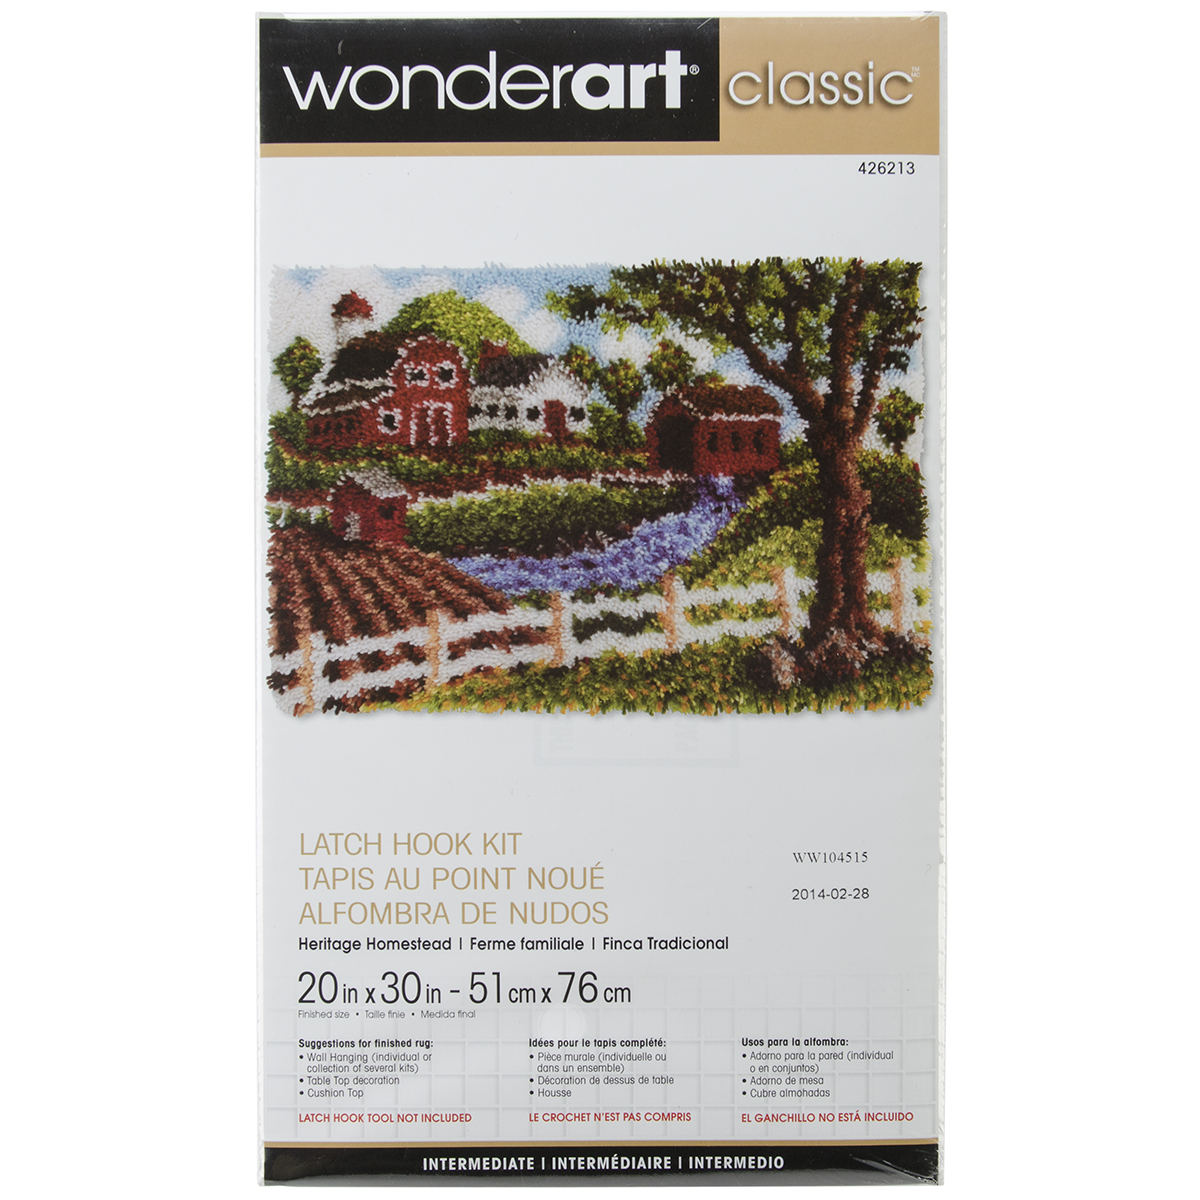 "Wonderart Classic Latch Hook Kit, 20"" x 30"", Heritage Homestead"